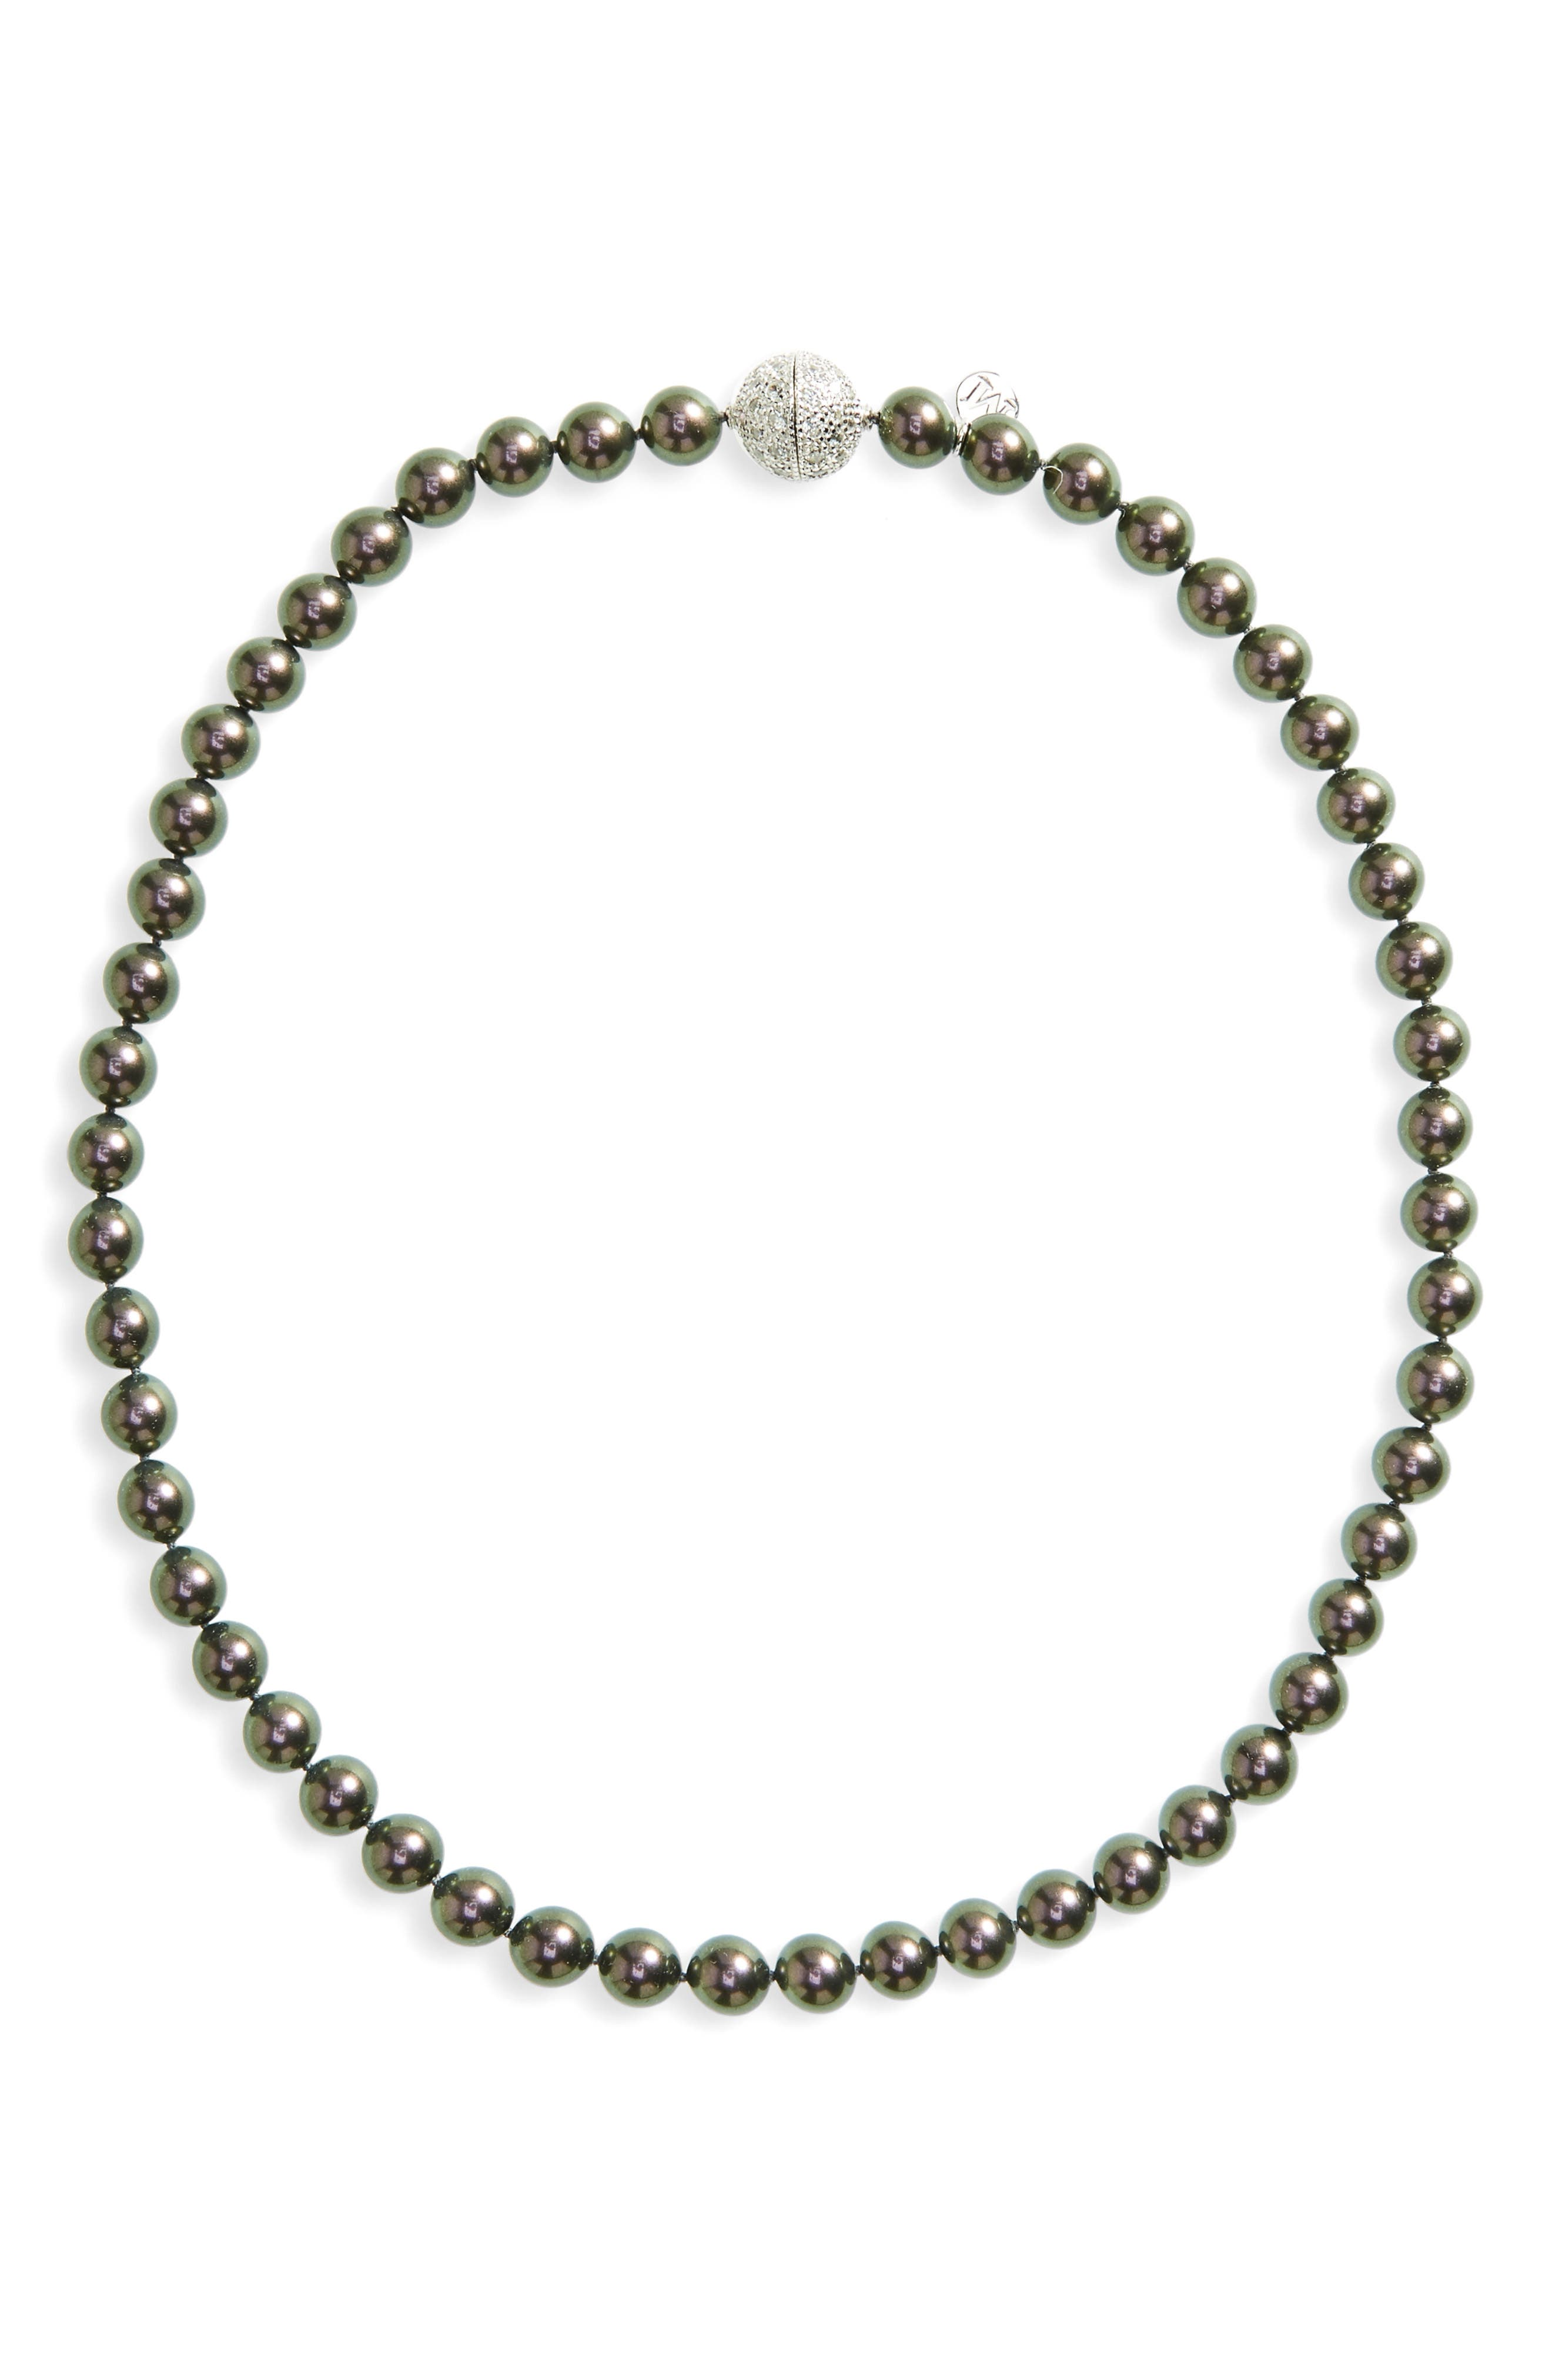 8mm Round Simulated Pearl Strand Necklace,                         Main,                         color, Grey